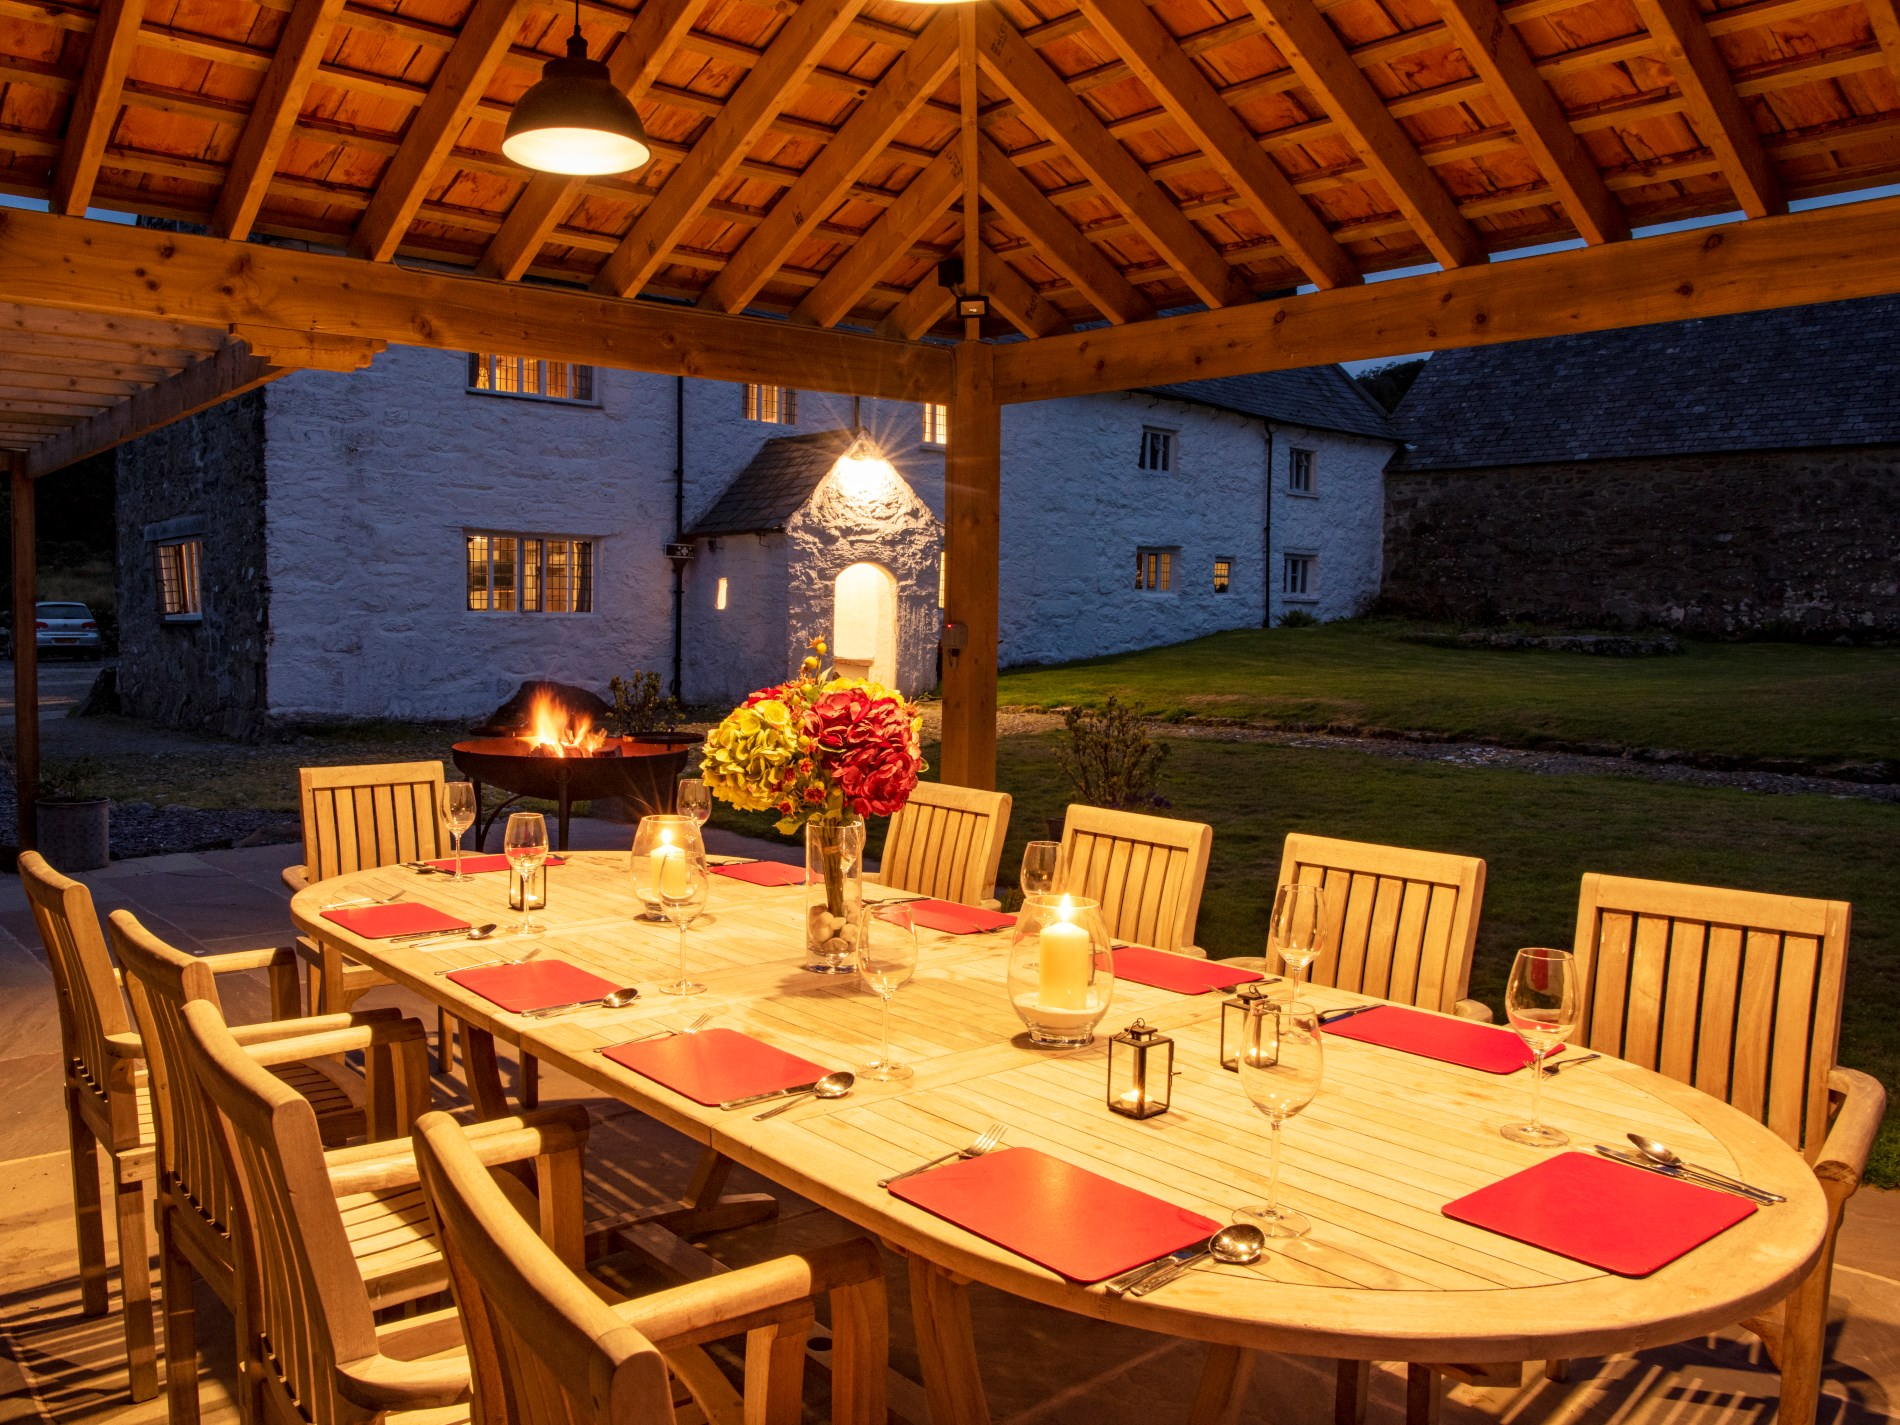 5 Bedroom House in North Wales, Snowdonia and North Wales